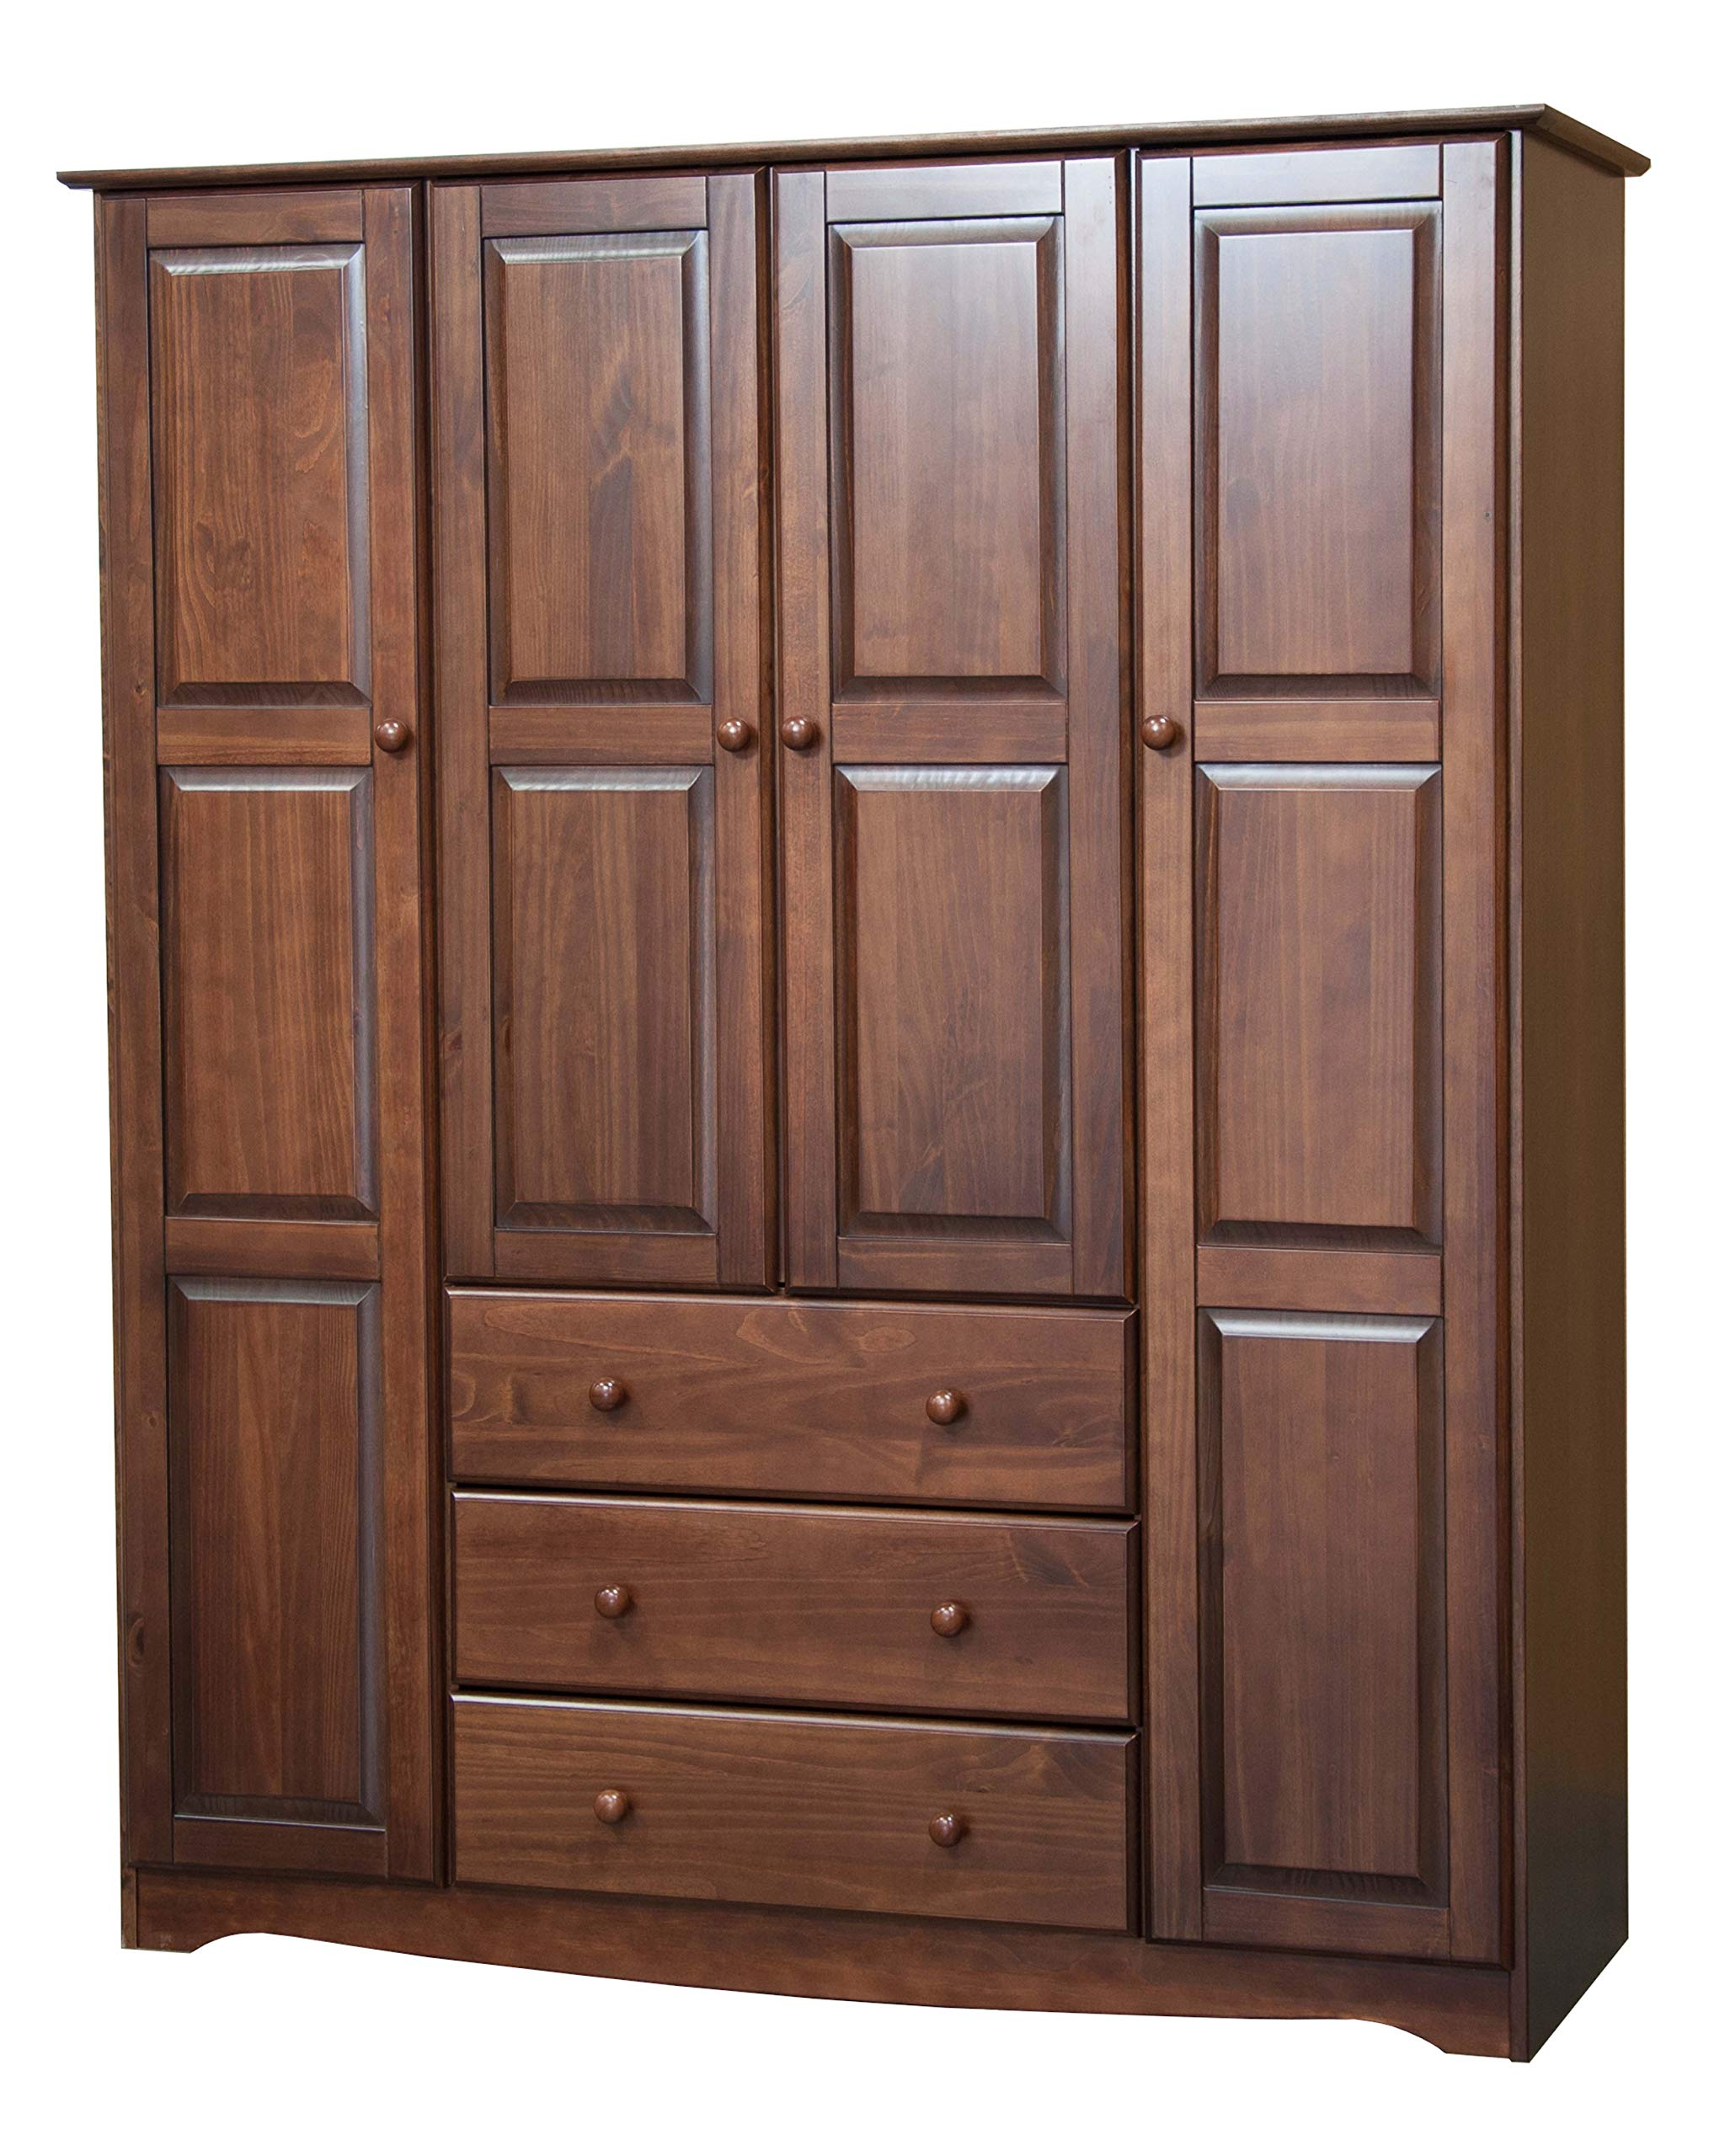 Palace Imports 100% Solid Wood Family Wardrobe/Armoire/Closet 5963, Mocha, 60'' W x 72'' H x 21'' D. 3 Clothing Rods Included. NO Shelves Included. Optional Small and Large Shelves Sold Separately.